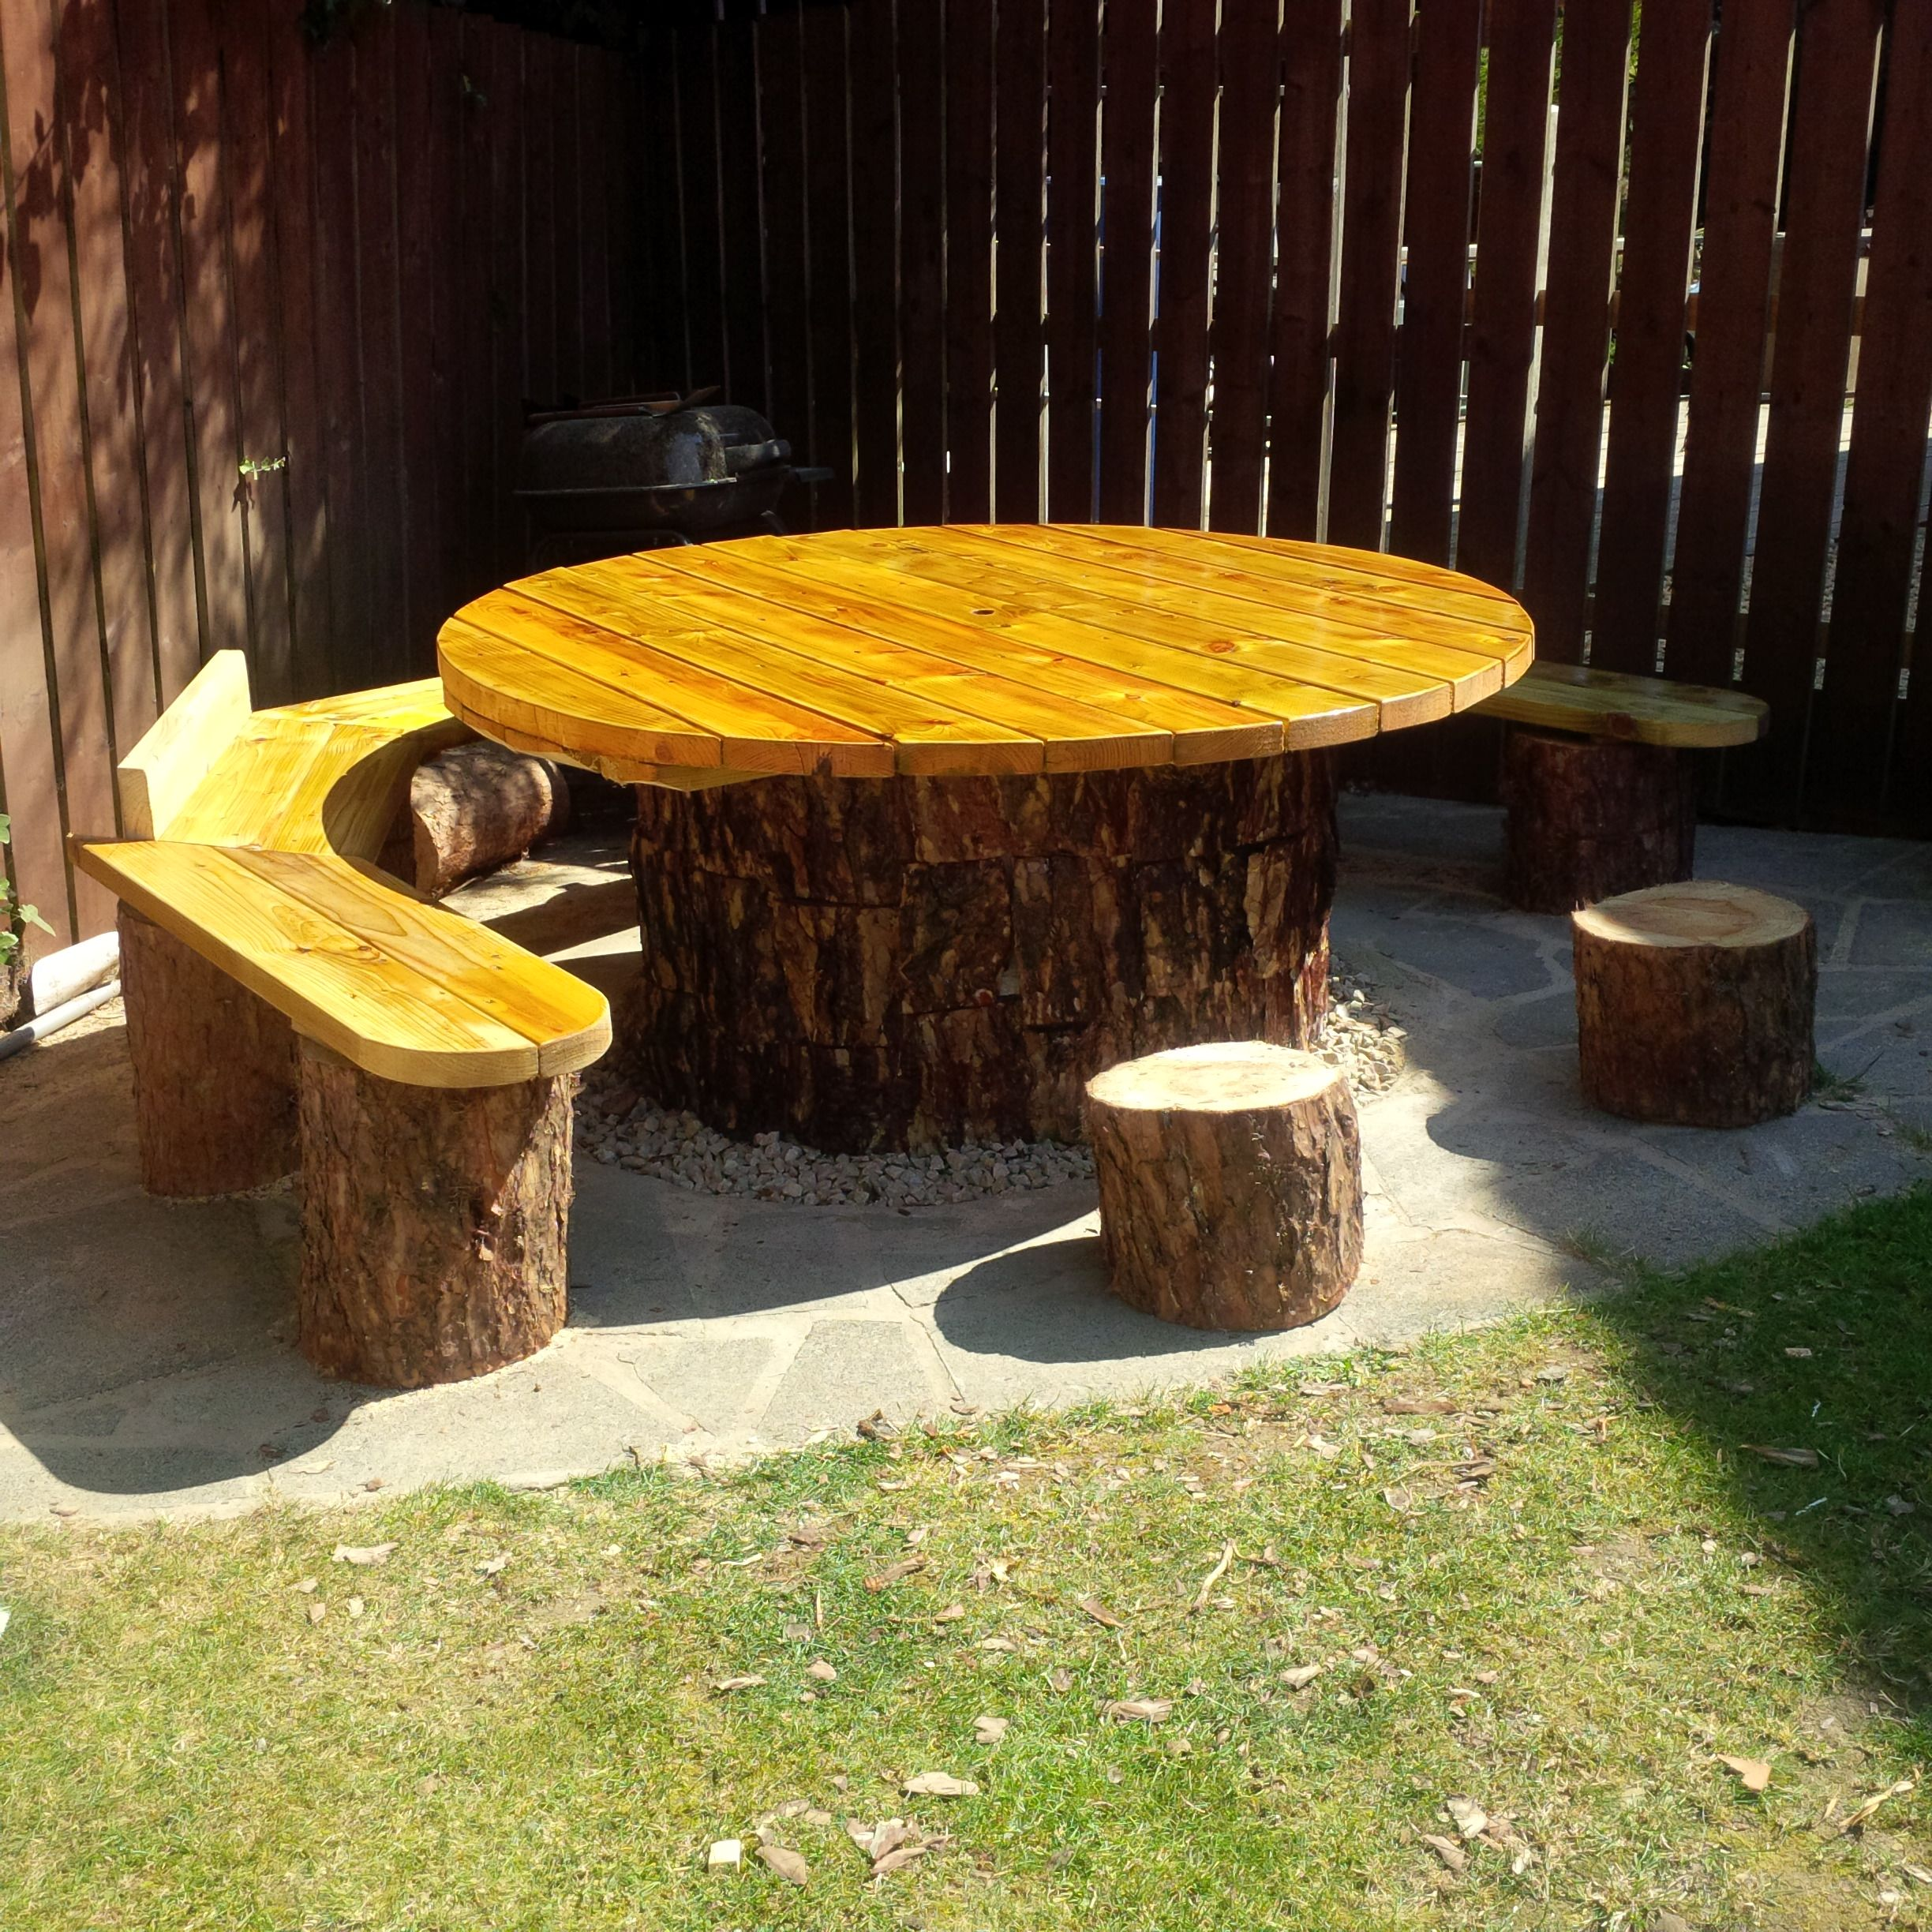 Diy Log Table Table Made With Concrete Cylinder And Tree Bark